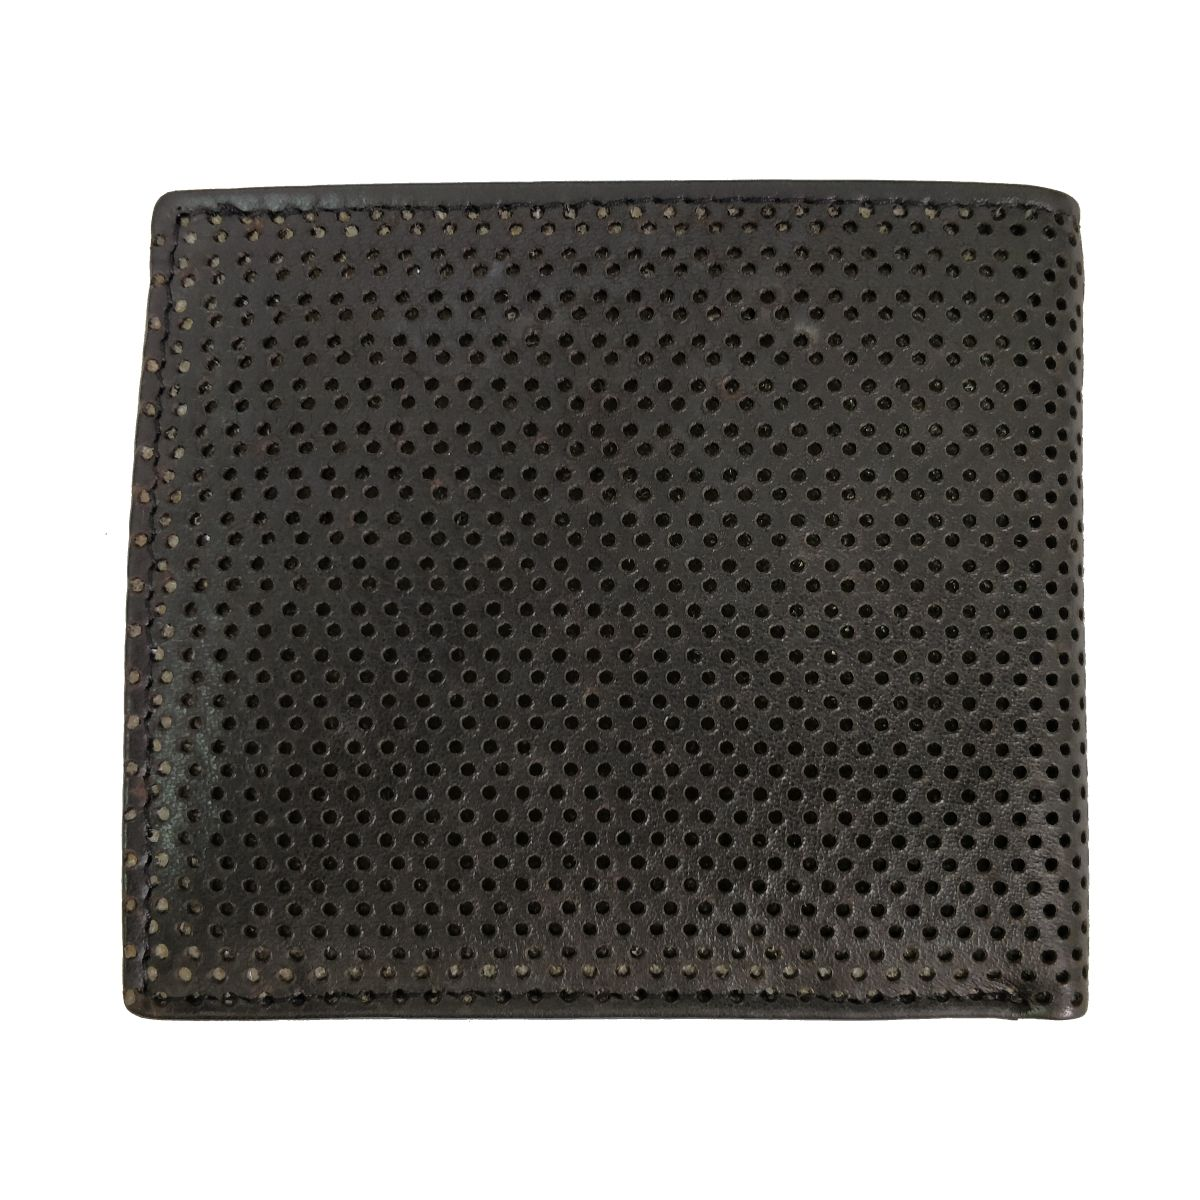 solo Leather Wallet With Broken Strip and Coin Pouch - Black/Blue